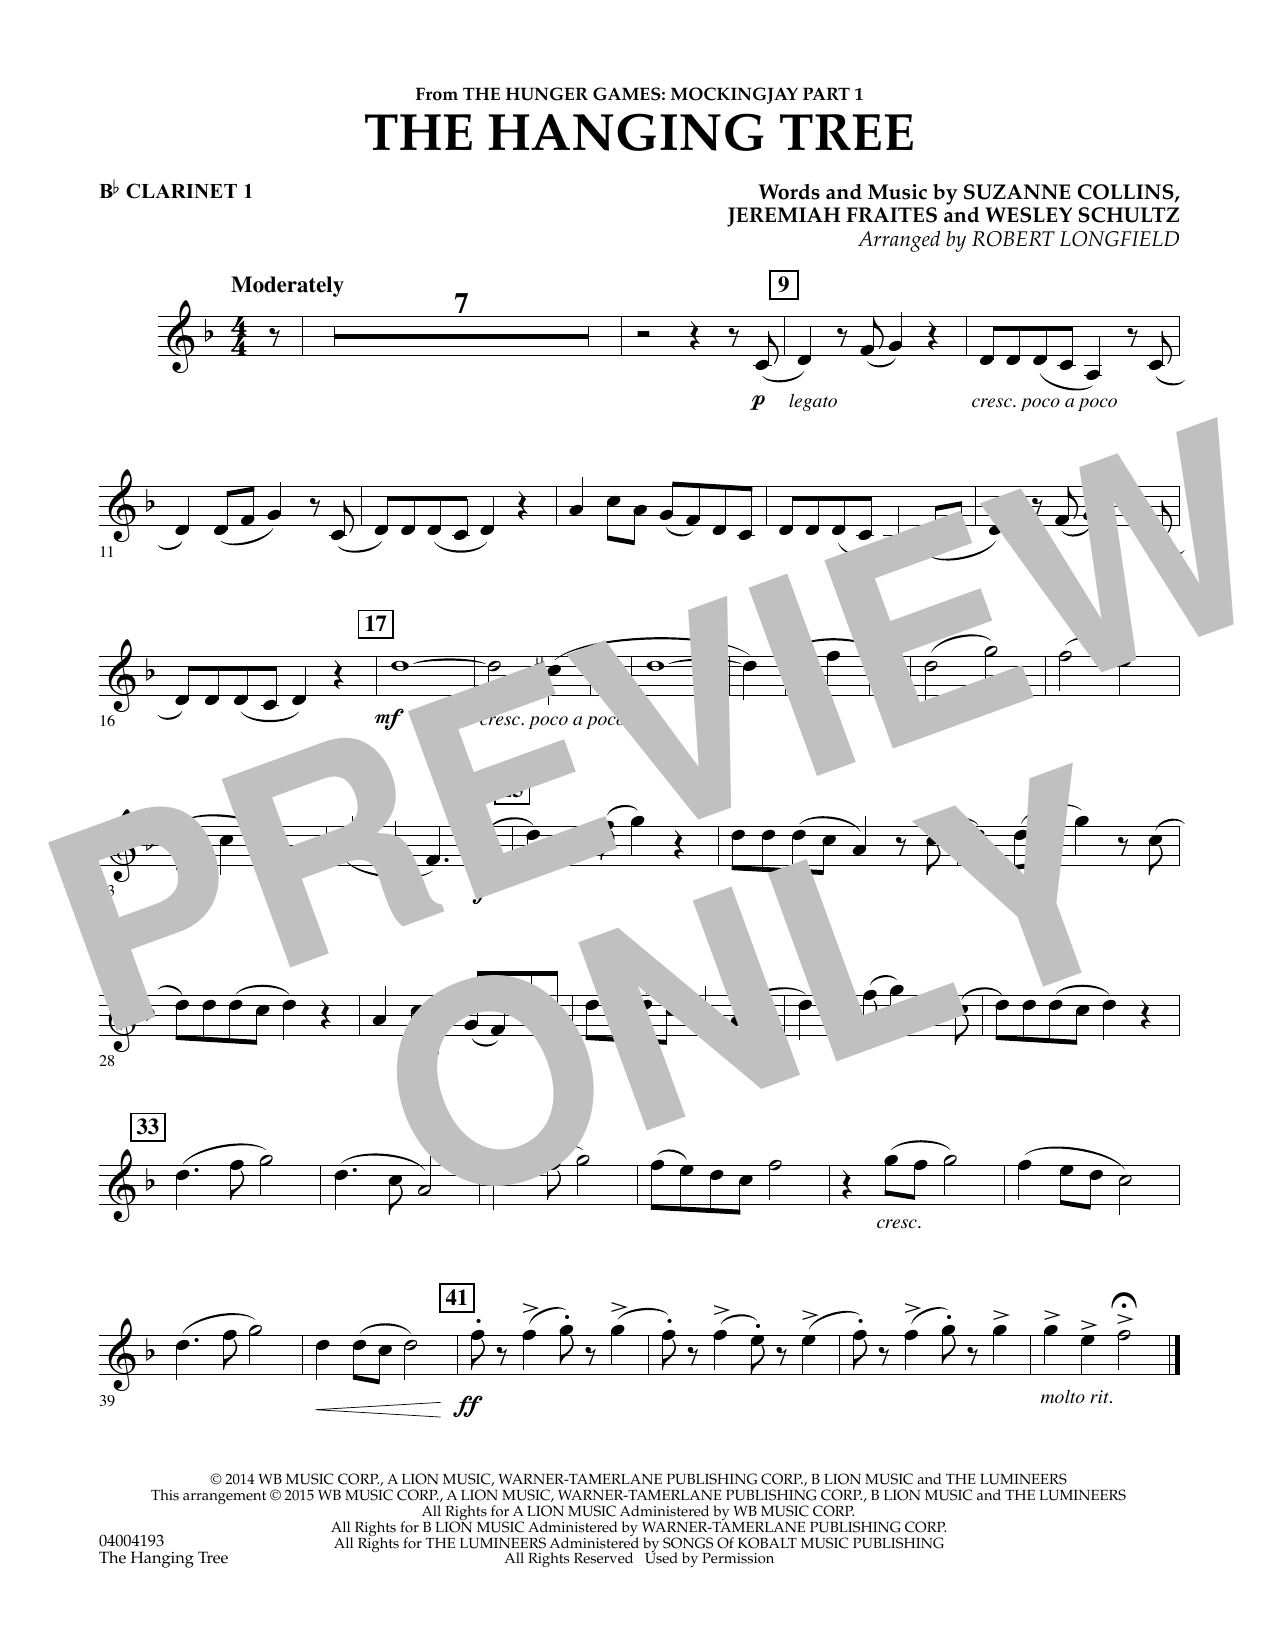 The Hanging Tree (from The Hunger Games: Mockingjay Part 1) - Bb Clarinet 1 (Concert Band)